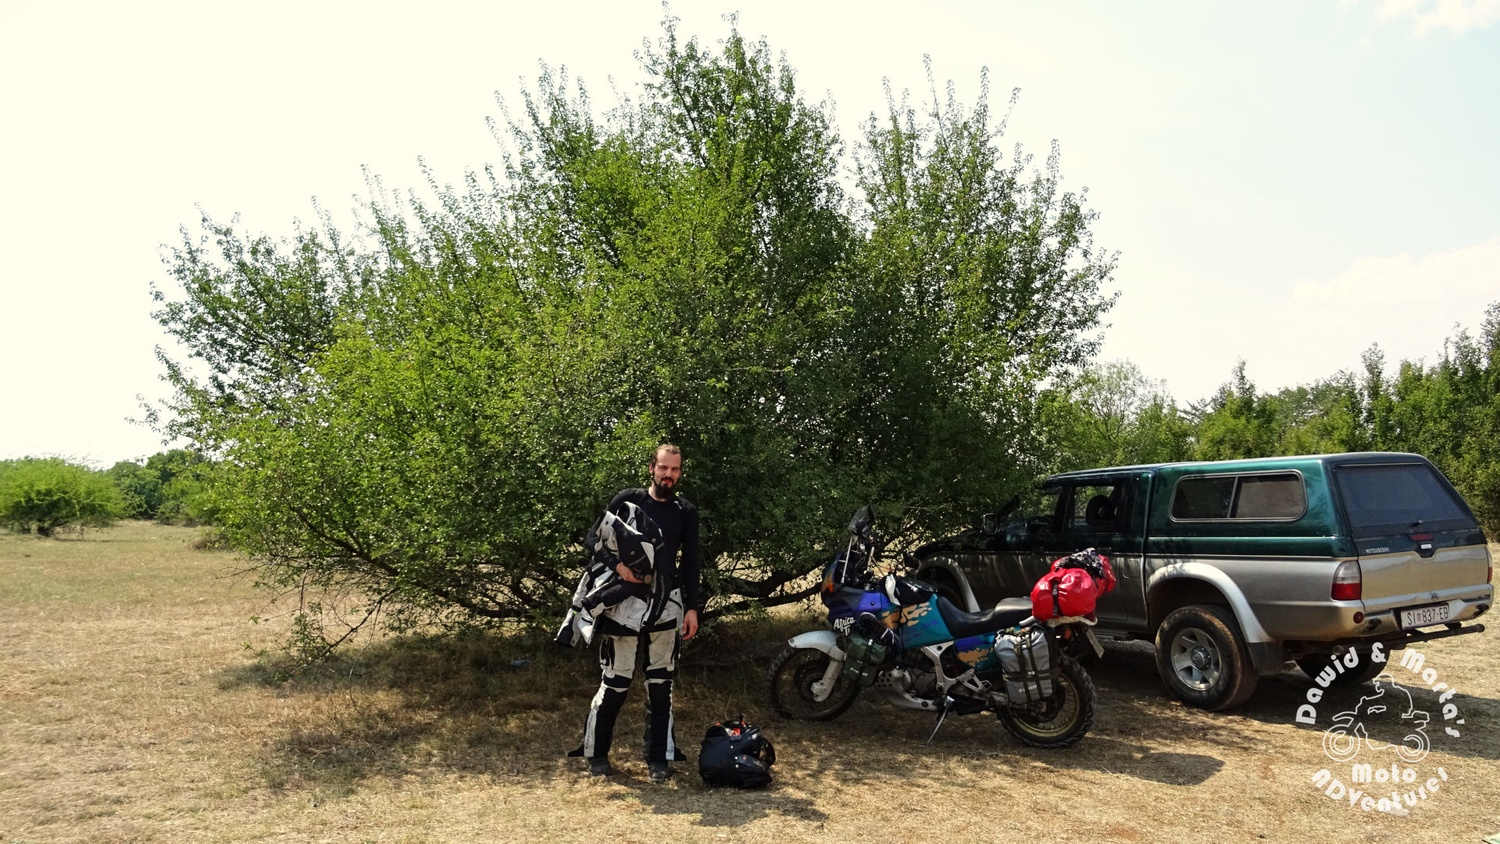 Africa Twin and Dawid at Krk National parking, inland Croatia